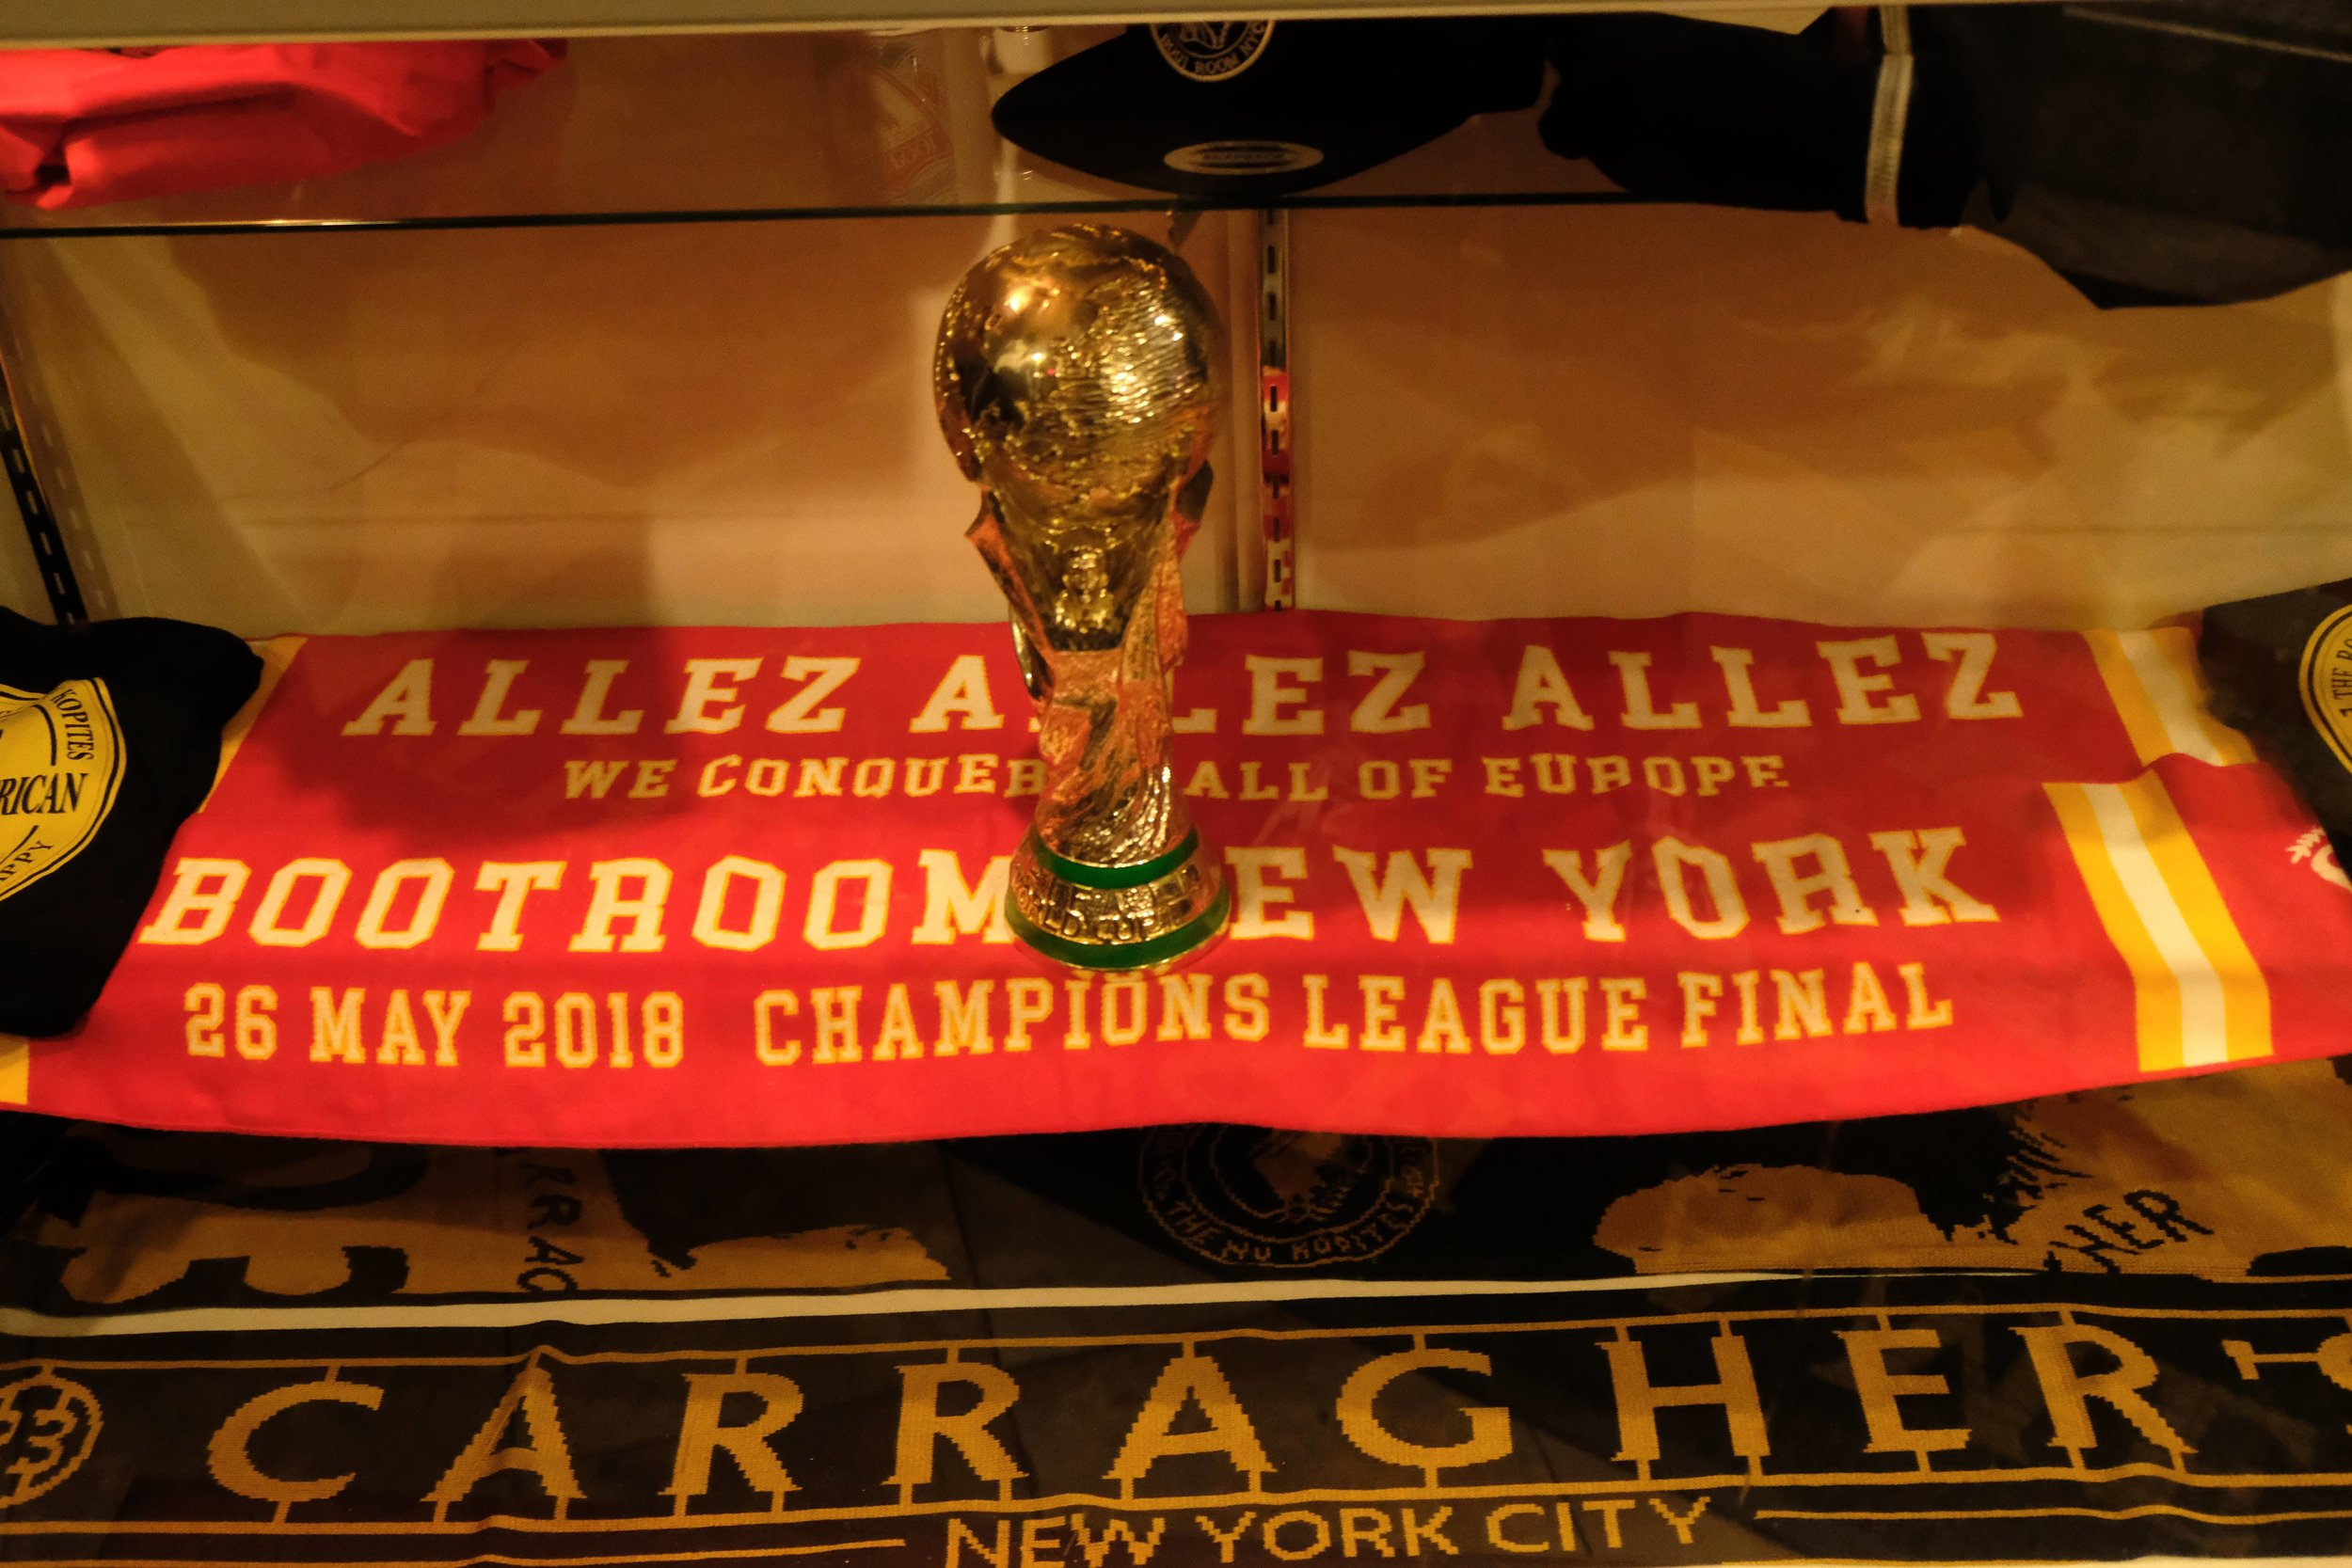 janette-beckman-lfc-liverpool-bootroom-nyc-champions-league-final.jpg